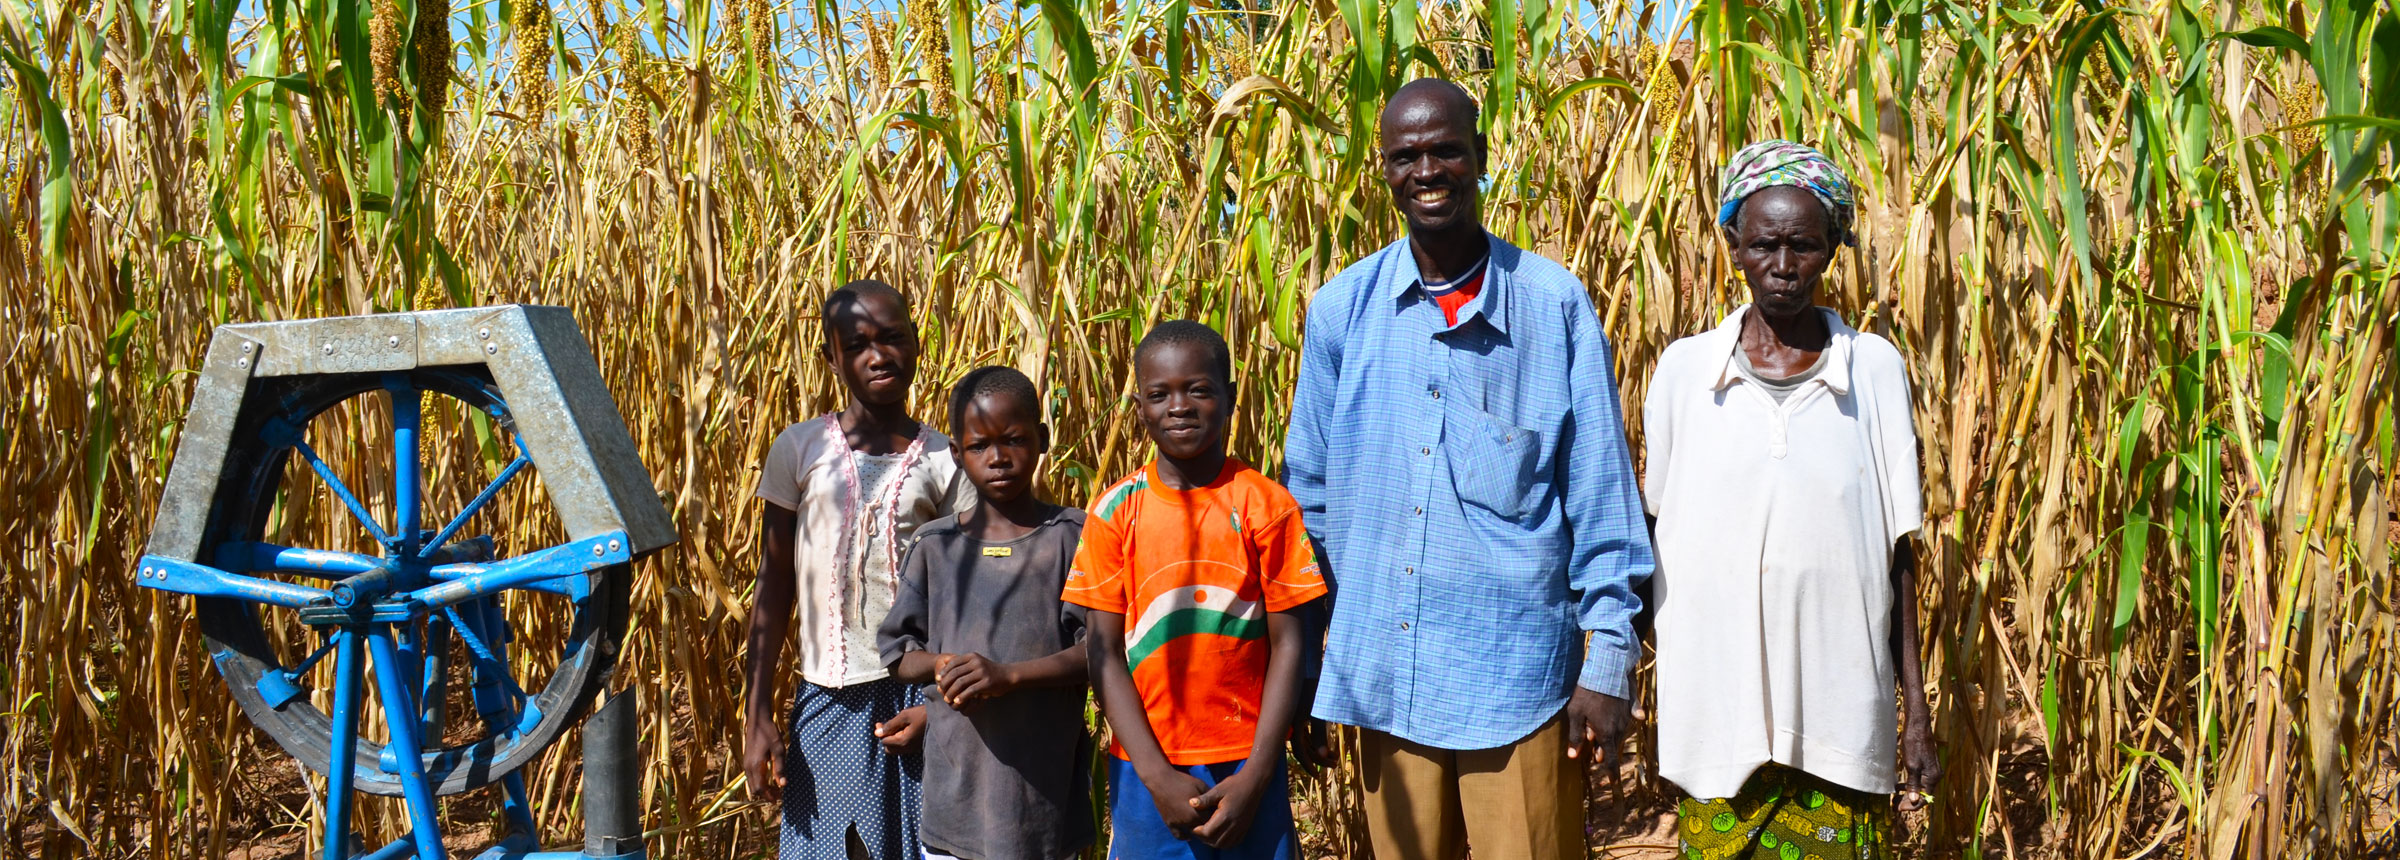 Burkina Faso family at water pump